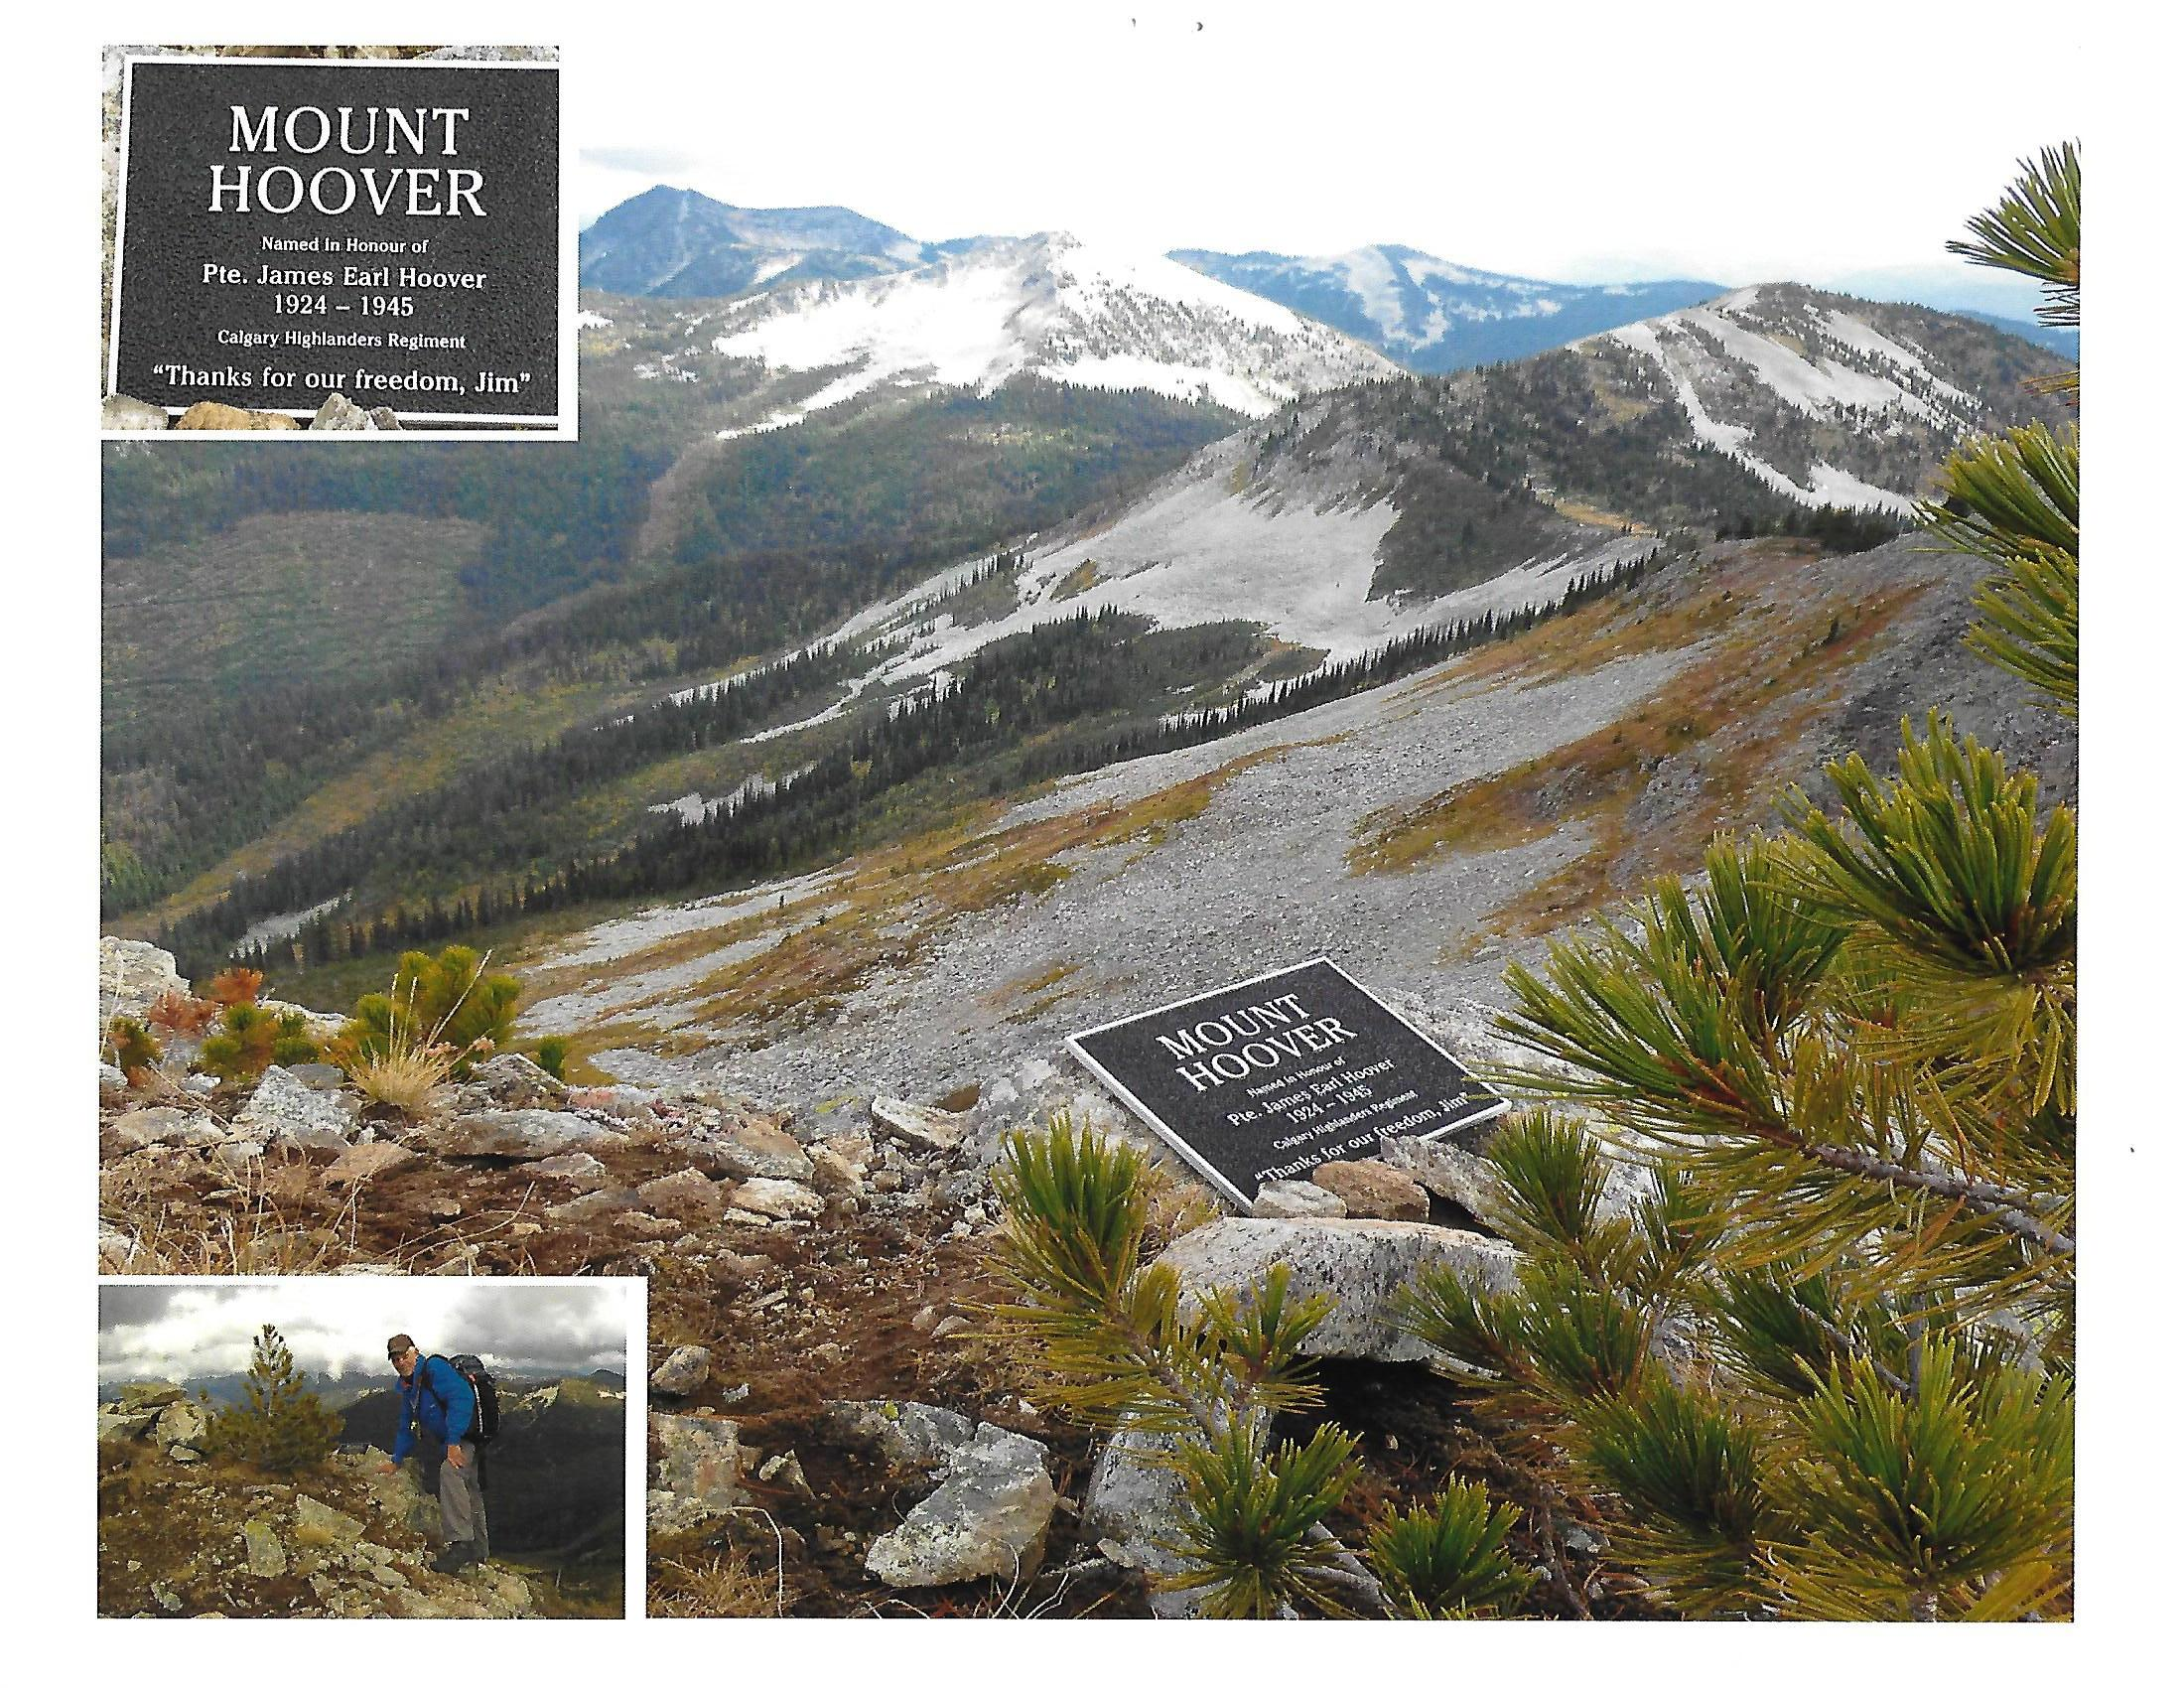 Plaque– Picture showing summit of Mt. Hoover, just northwest of Nelson, B.C. We climbed this mountain in September, 2016 and placed a plaque there in remembrance of my uncle, James (Jim) Earl Hoover.